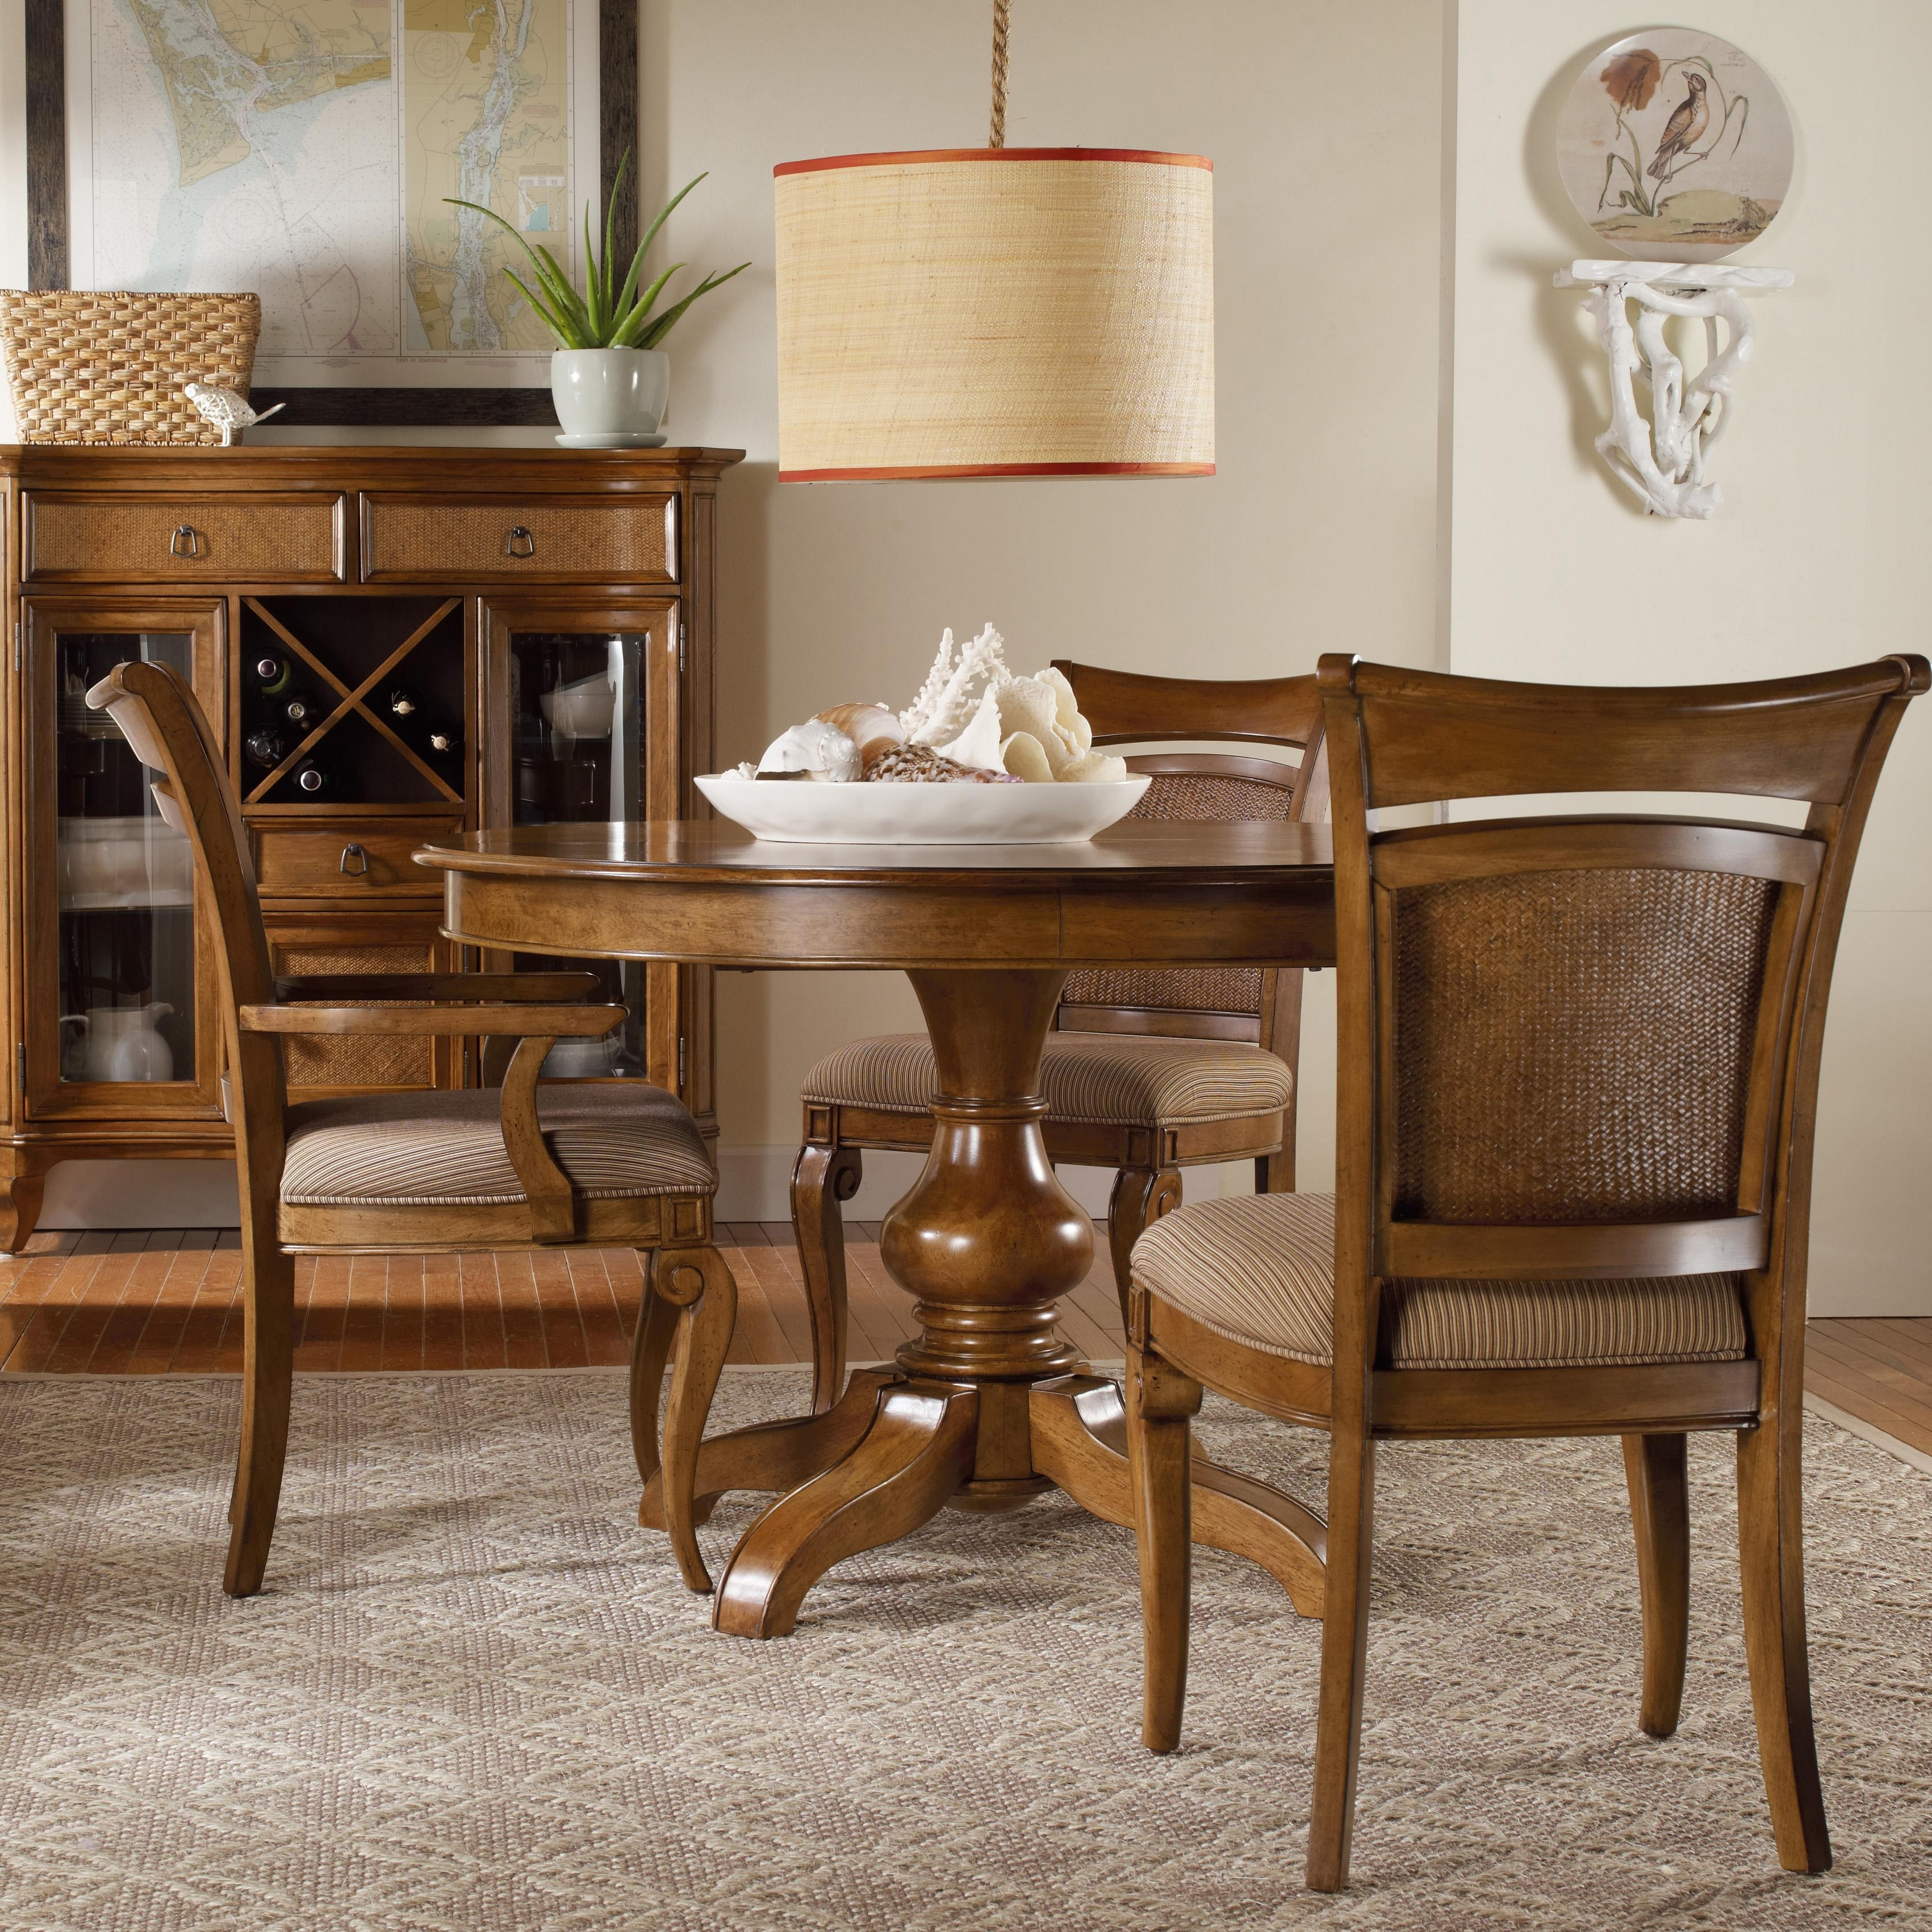 Sofa Chairs With Dining Table Pertaining To Recent Hooker Furniture Windward Pedestal Dining Table & Raffia Chairs (View 9 of 15)